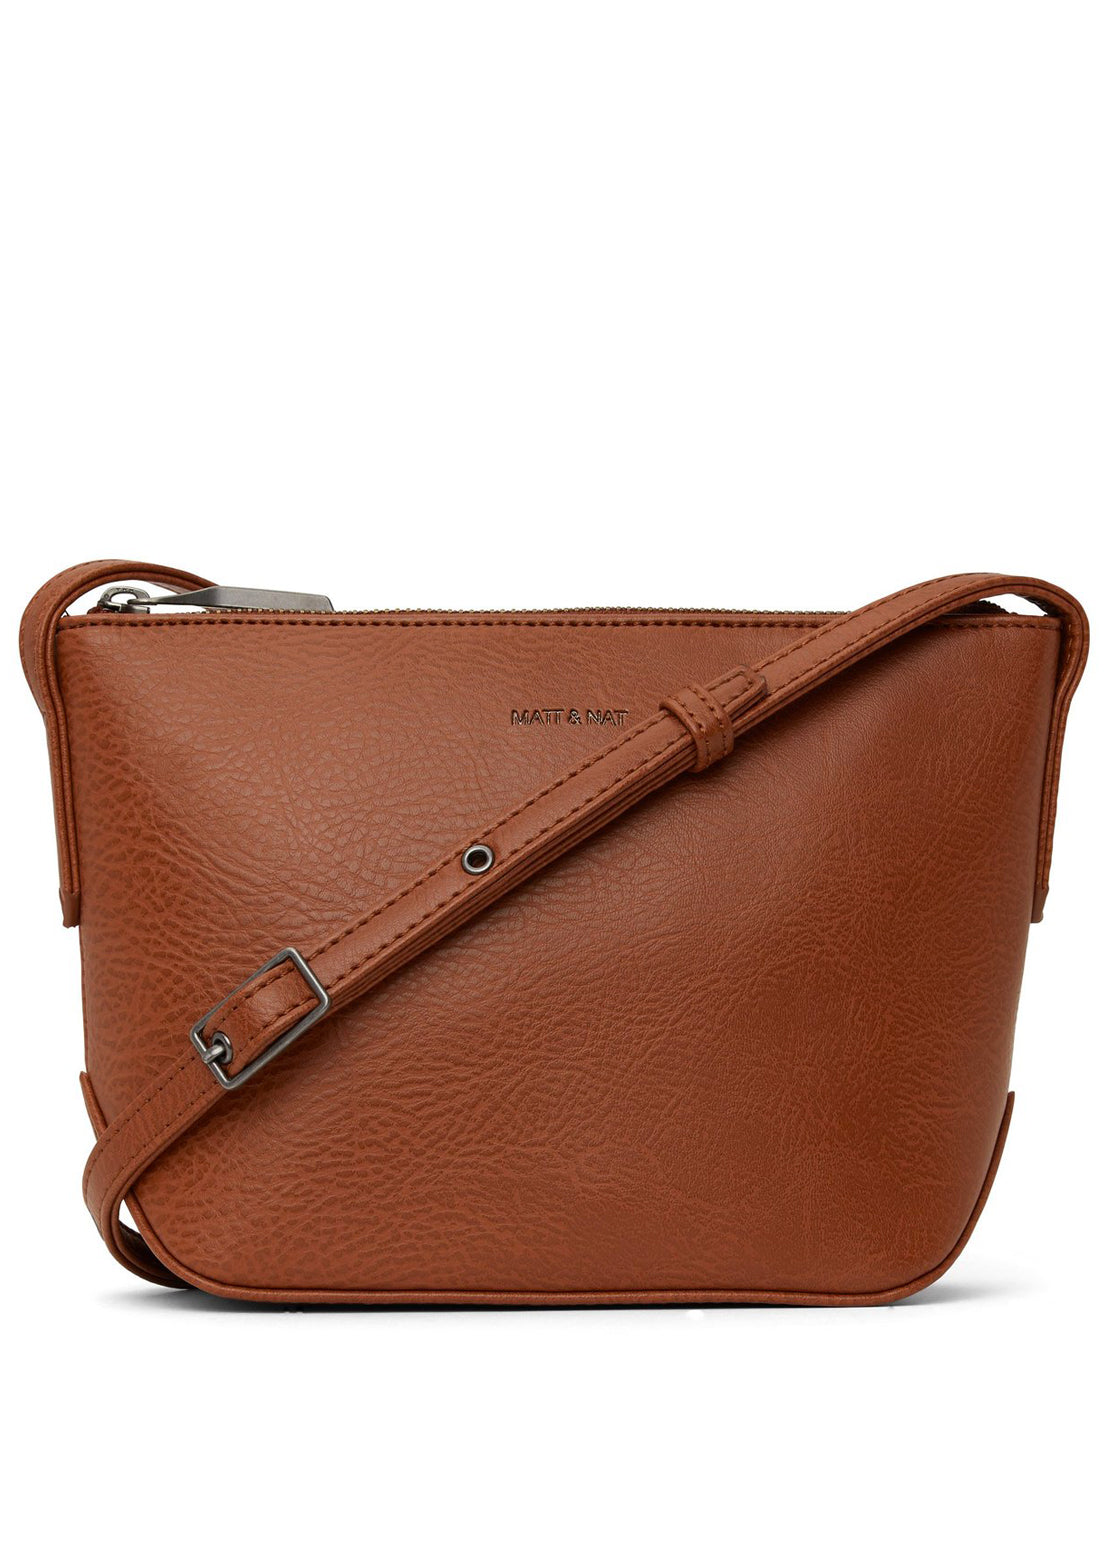 Matt & Nat Sam Dwell Handbag Chai